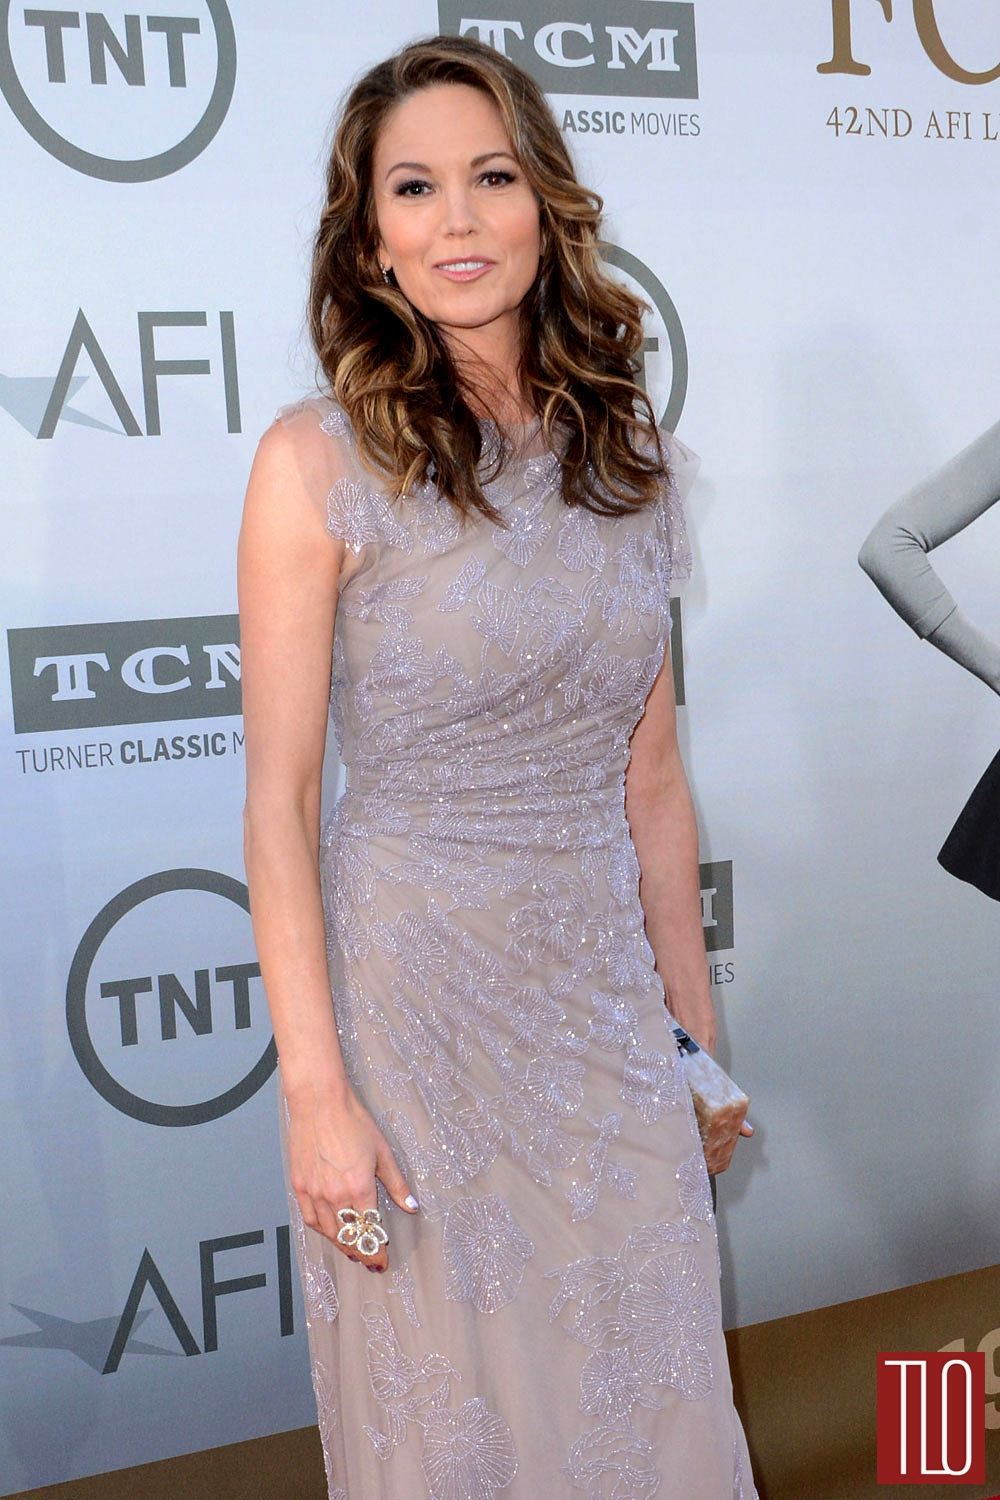 Diane-Lane-Jenny-Packham-2014-AFI-Achievement-Award-Jane-Fonda-Tom-Lorenzo-Site-TLO (1)